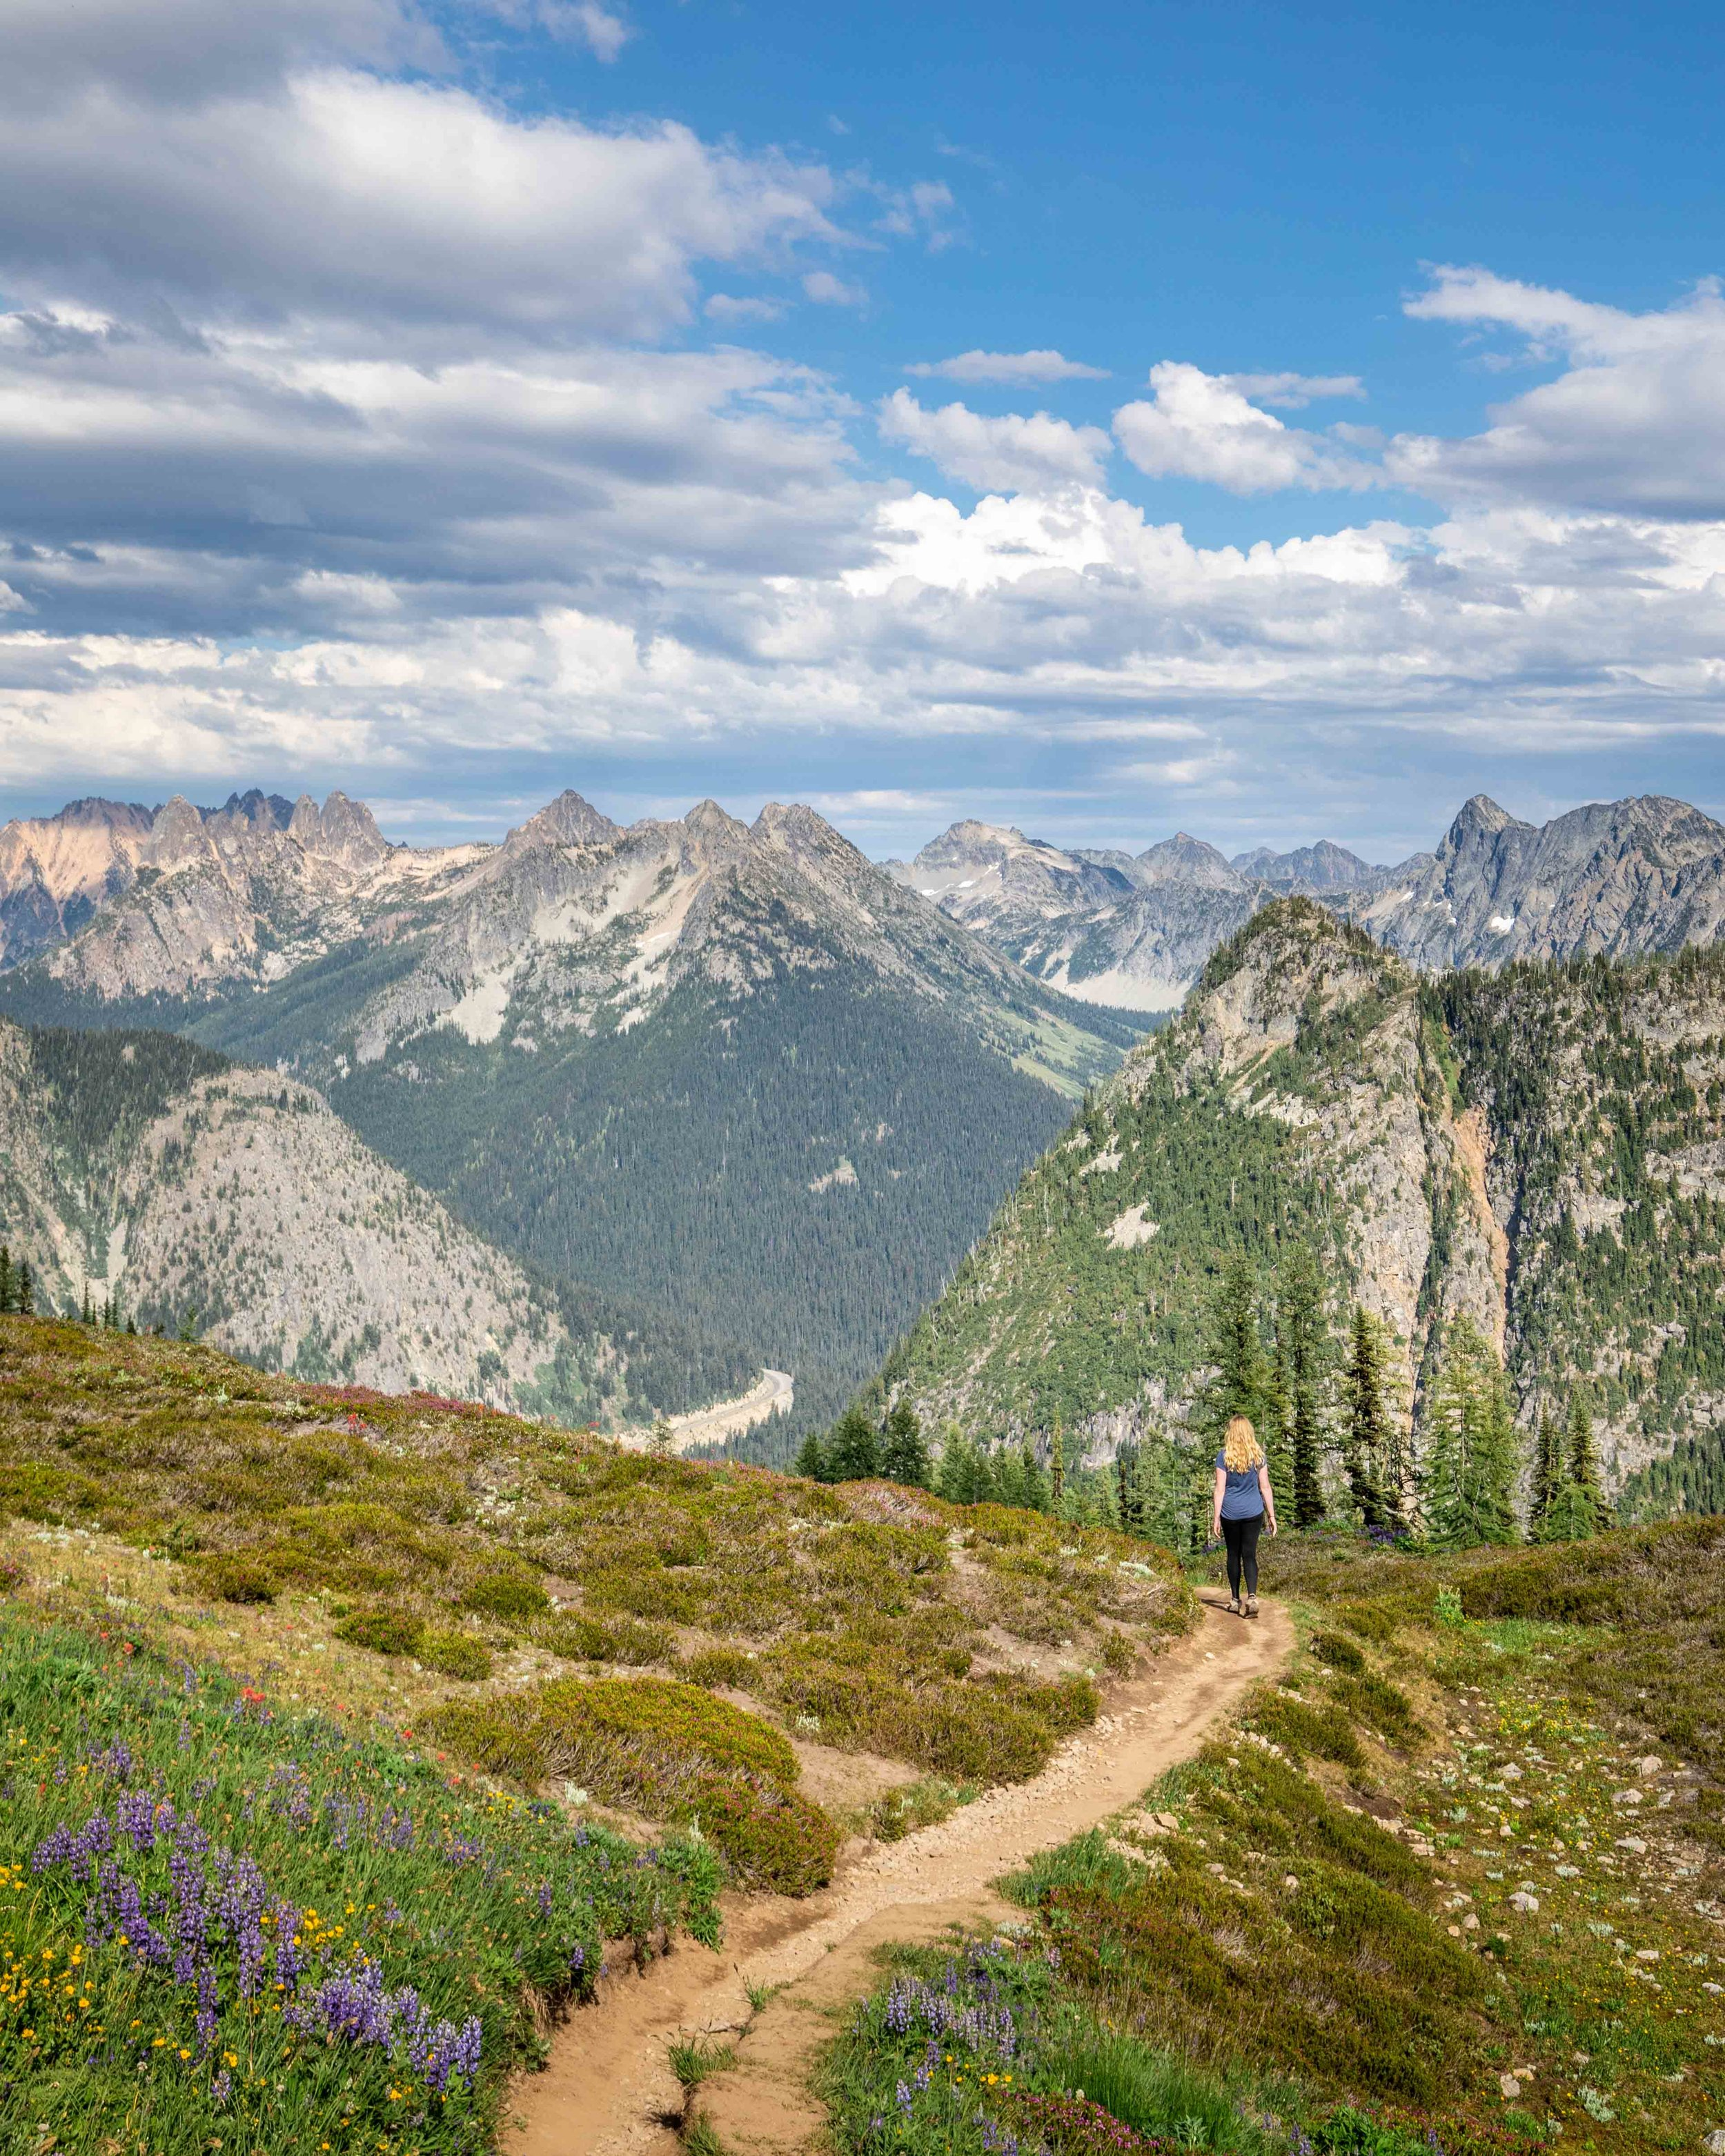 Maple Pass Loop - The views on the trail